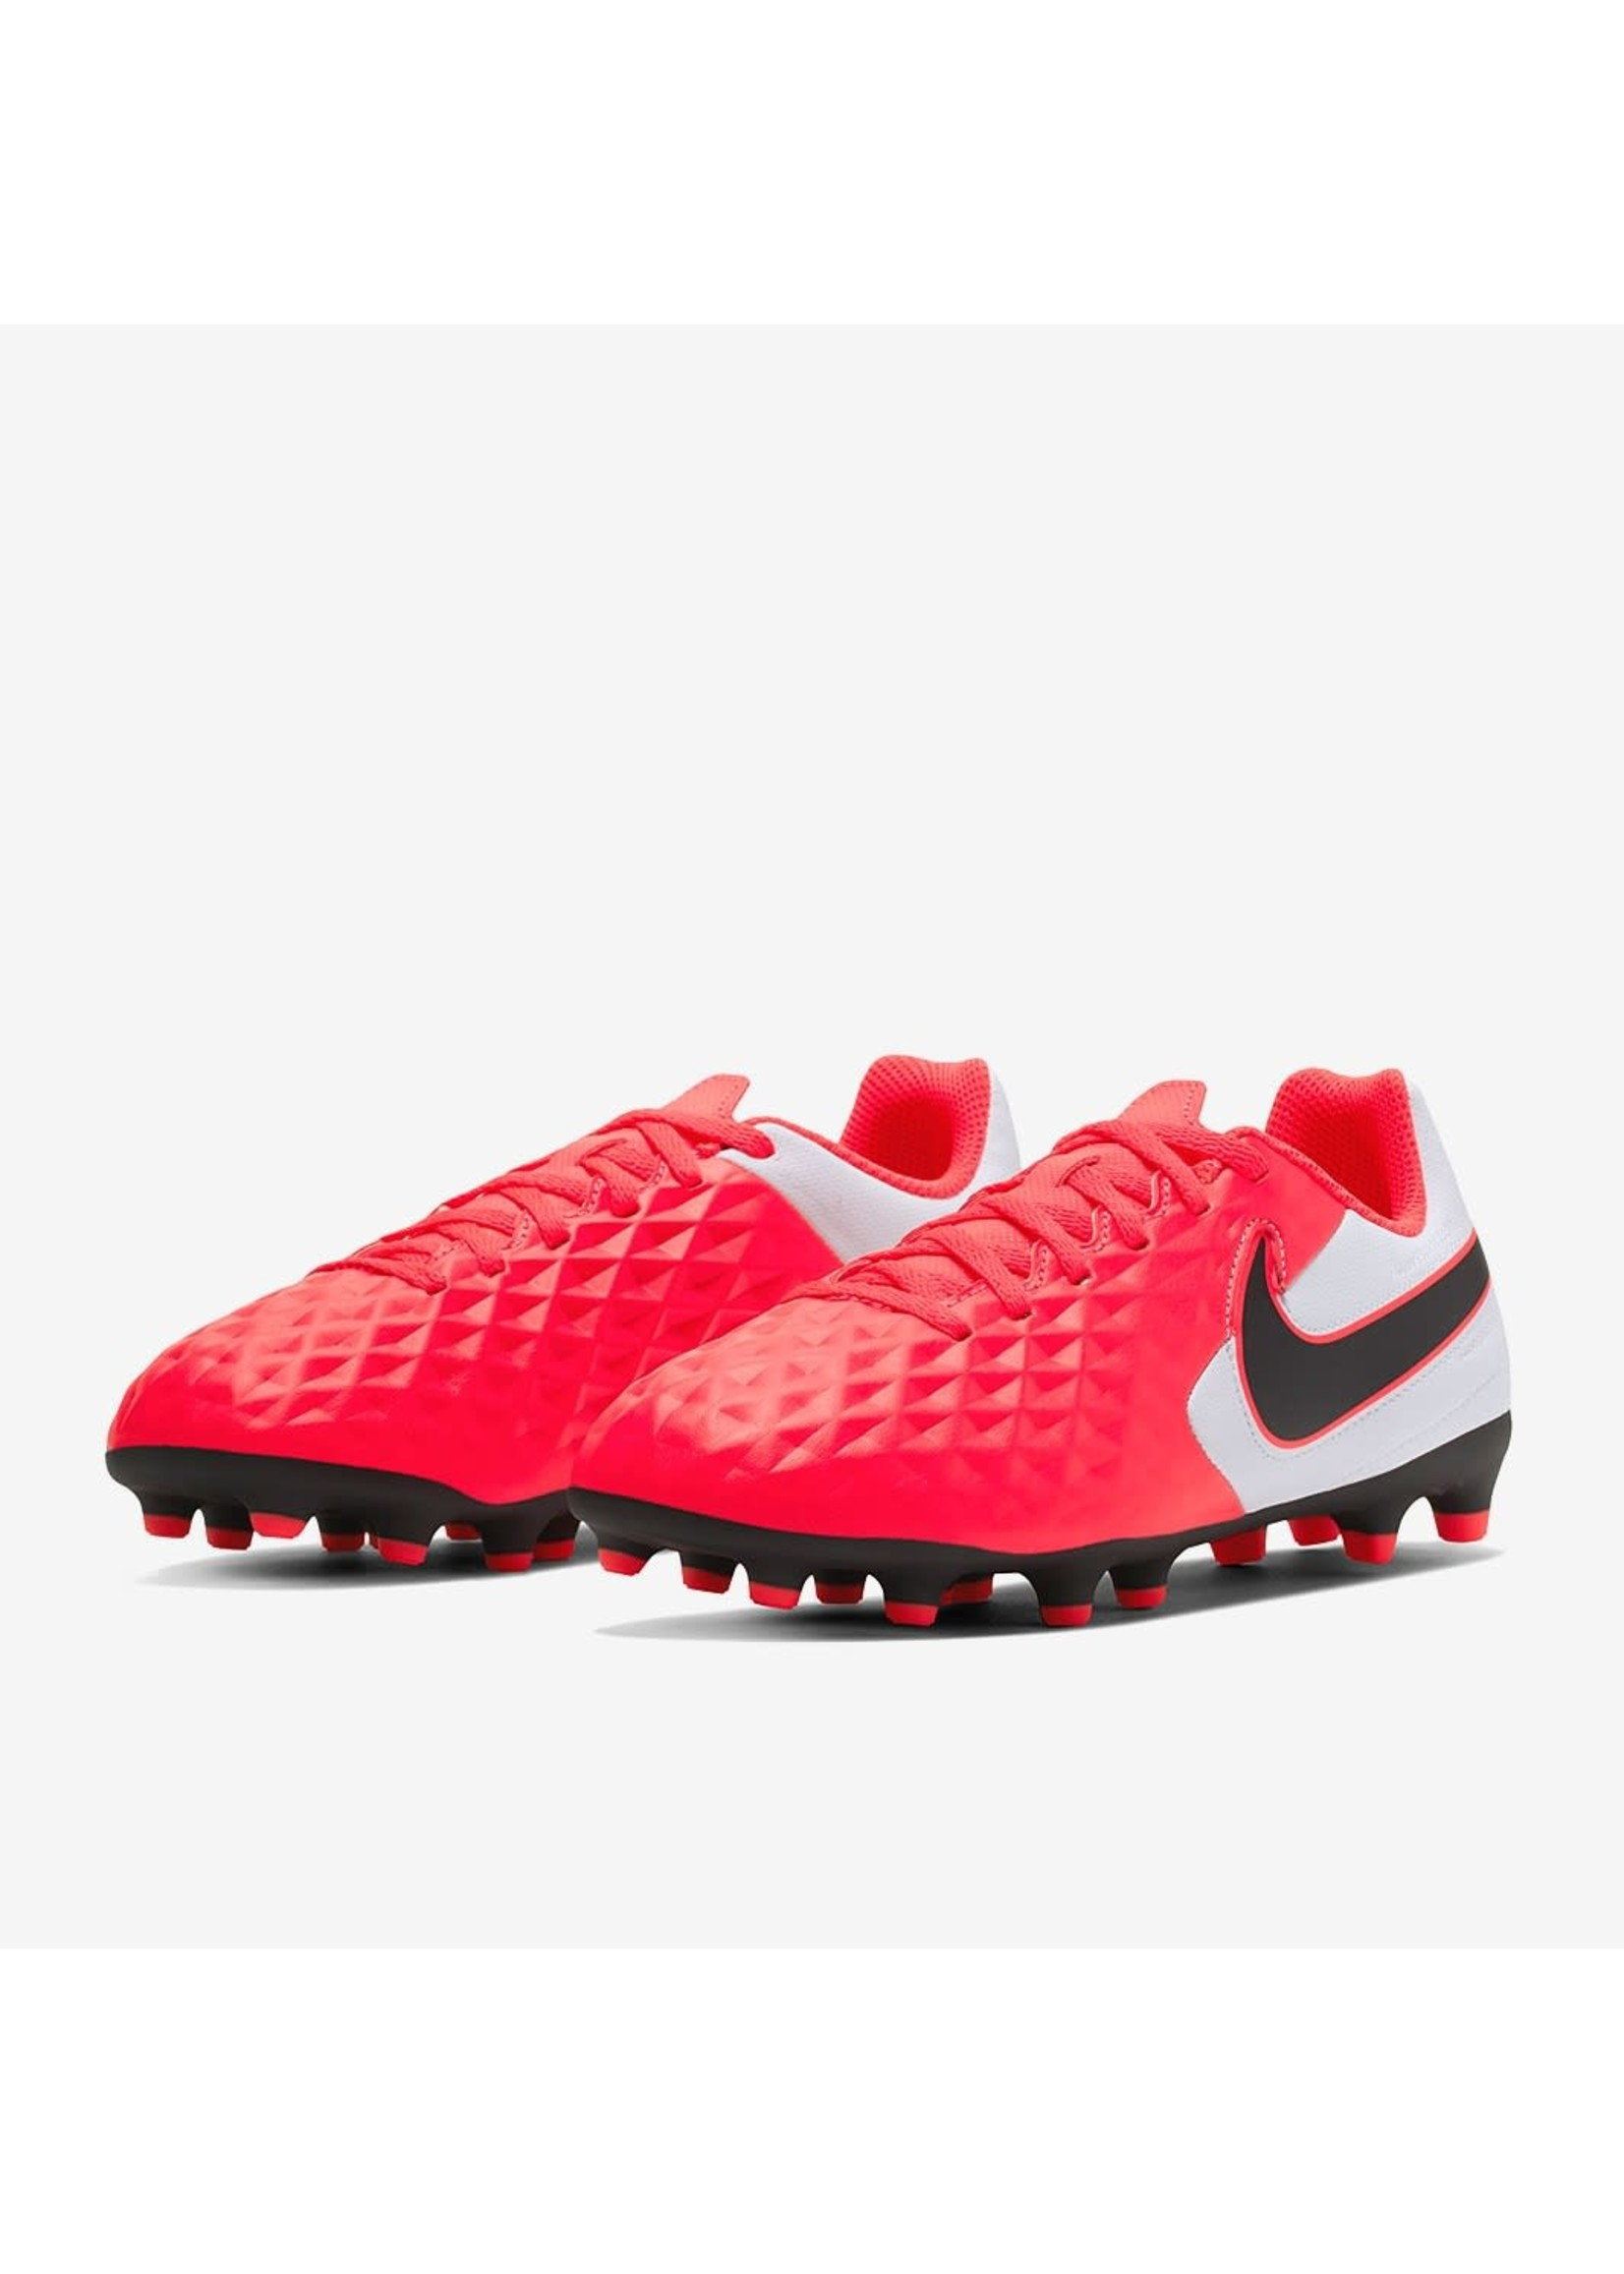 Nike JR LEGEND 8 CLUB FG/MG